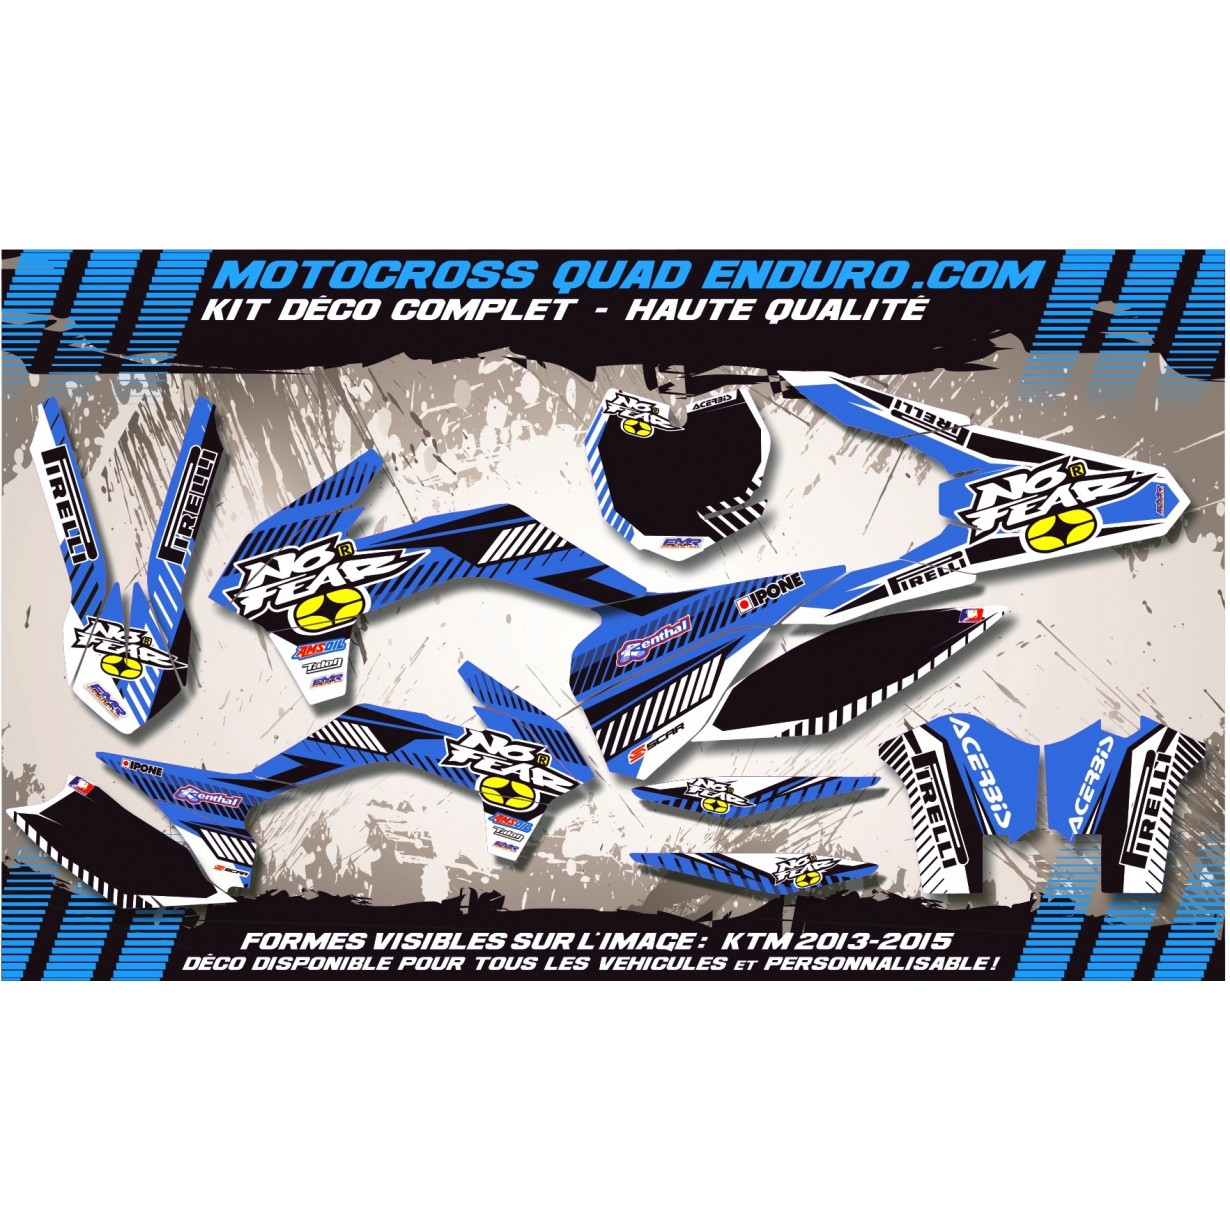 KIT DÉCO Perso TE 400 410 610 99-02 NO FEAR MA5E